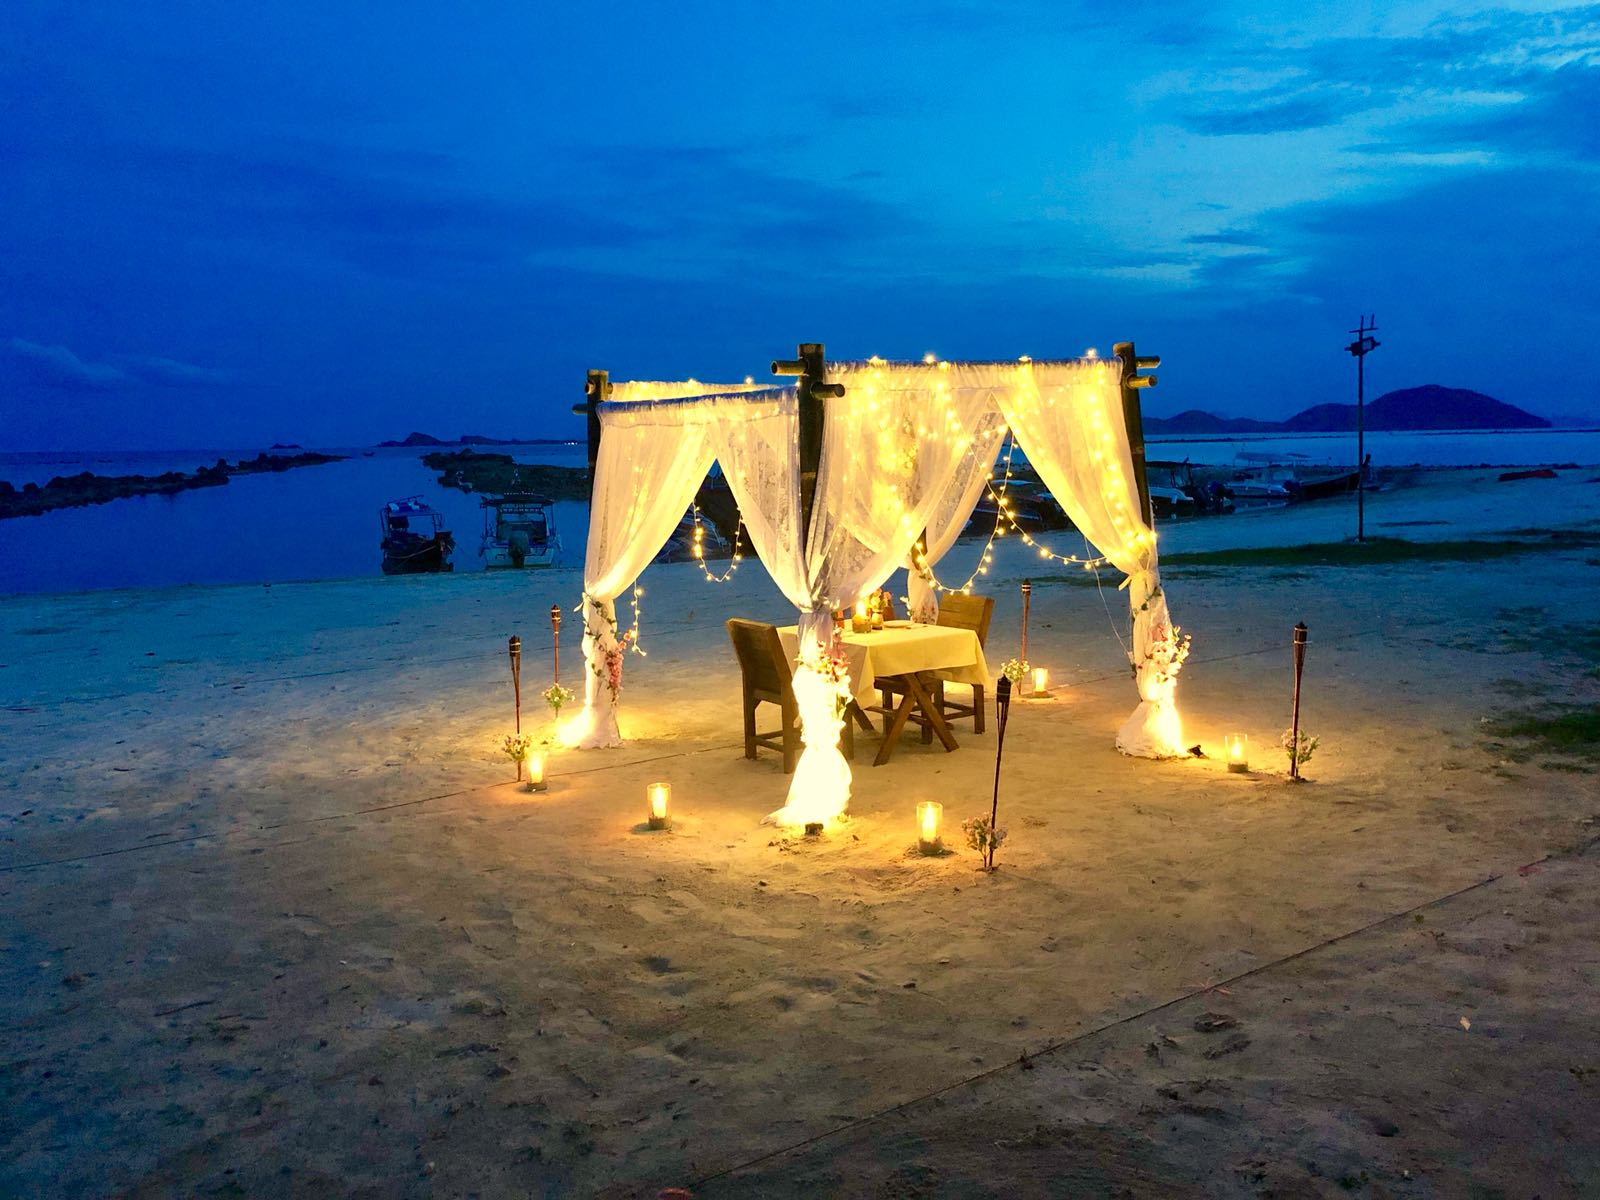 Romantic speedboat cruise with dinner on the beach, Koh Samui, Thailand